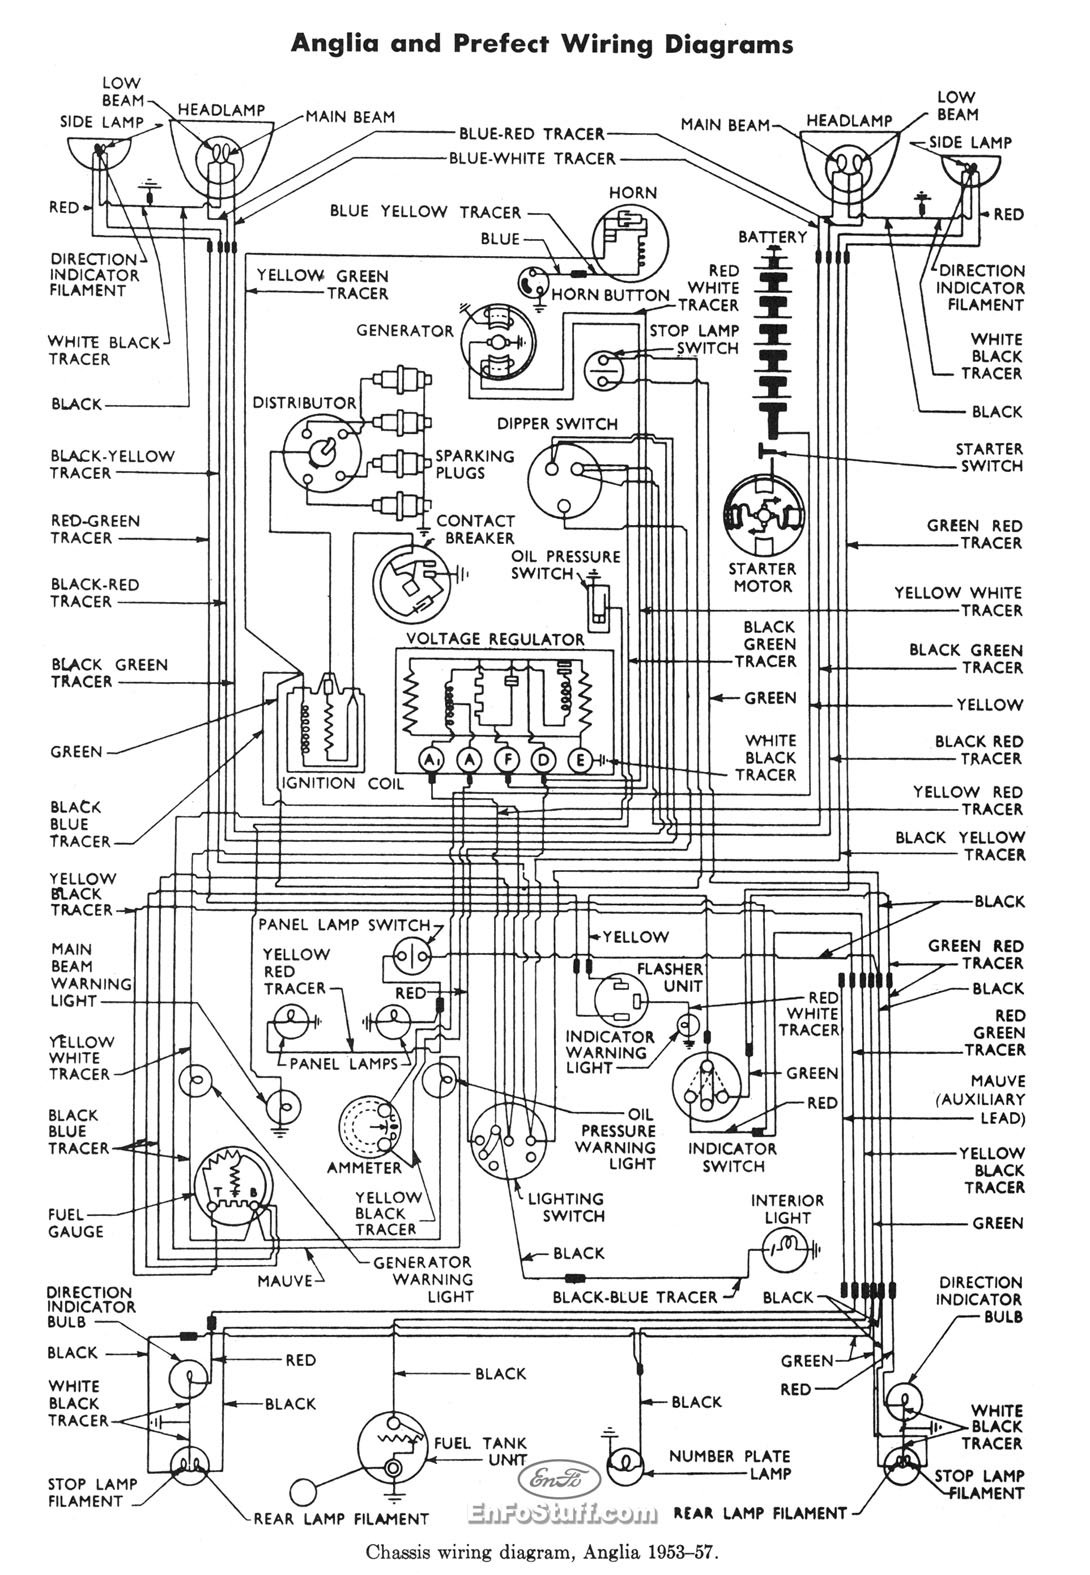 Wire Diagram Wd45 Trusted Wiring Diagrams Allis Chalmers Magneto 8n Ford Tractor 12 Volt Get Free Image Manual